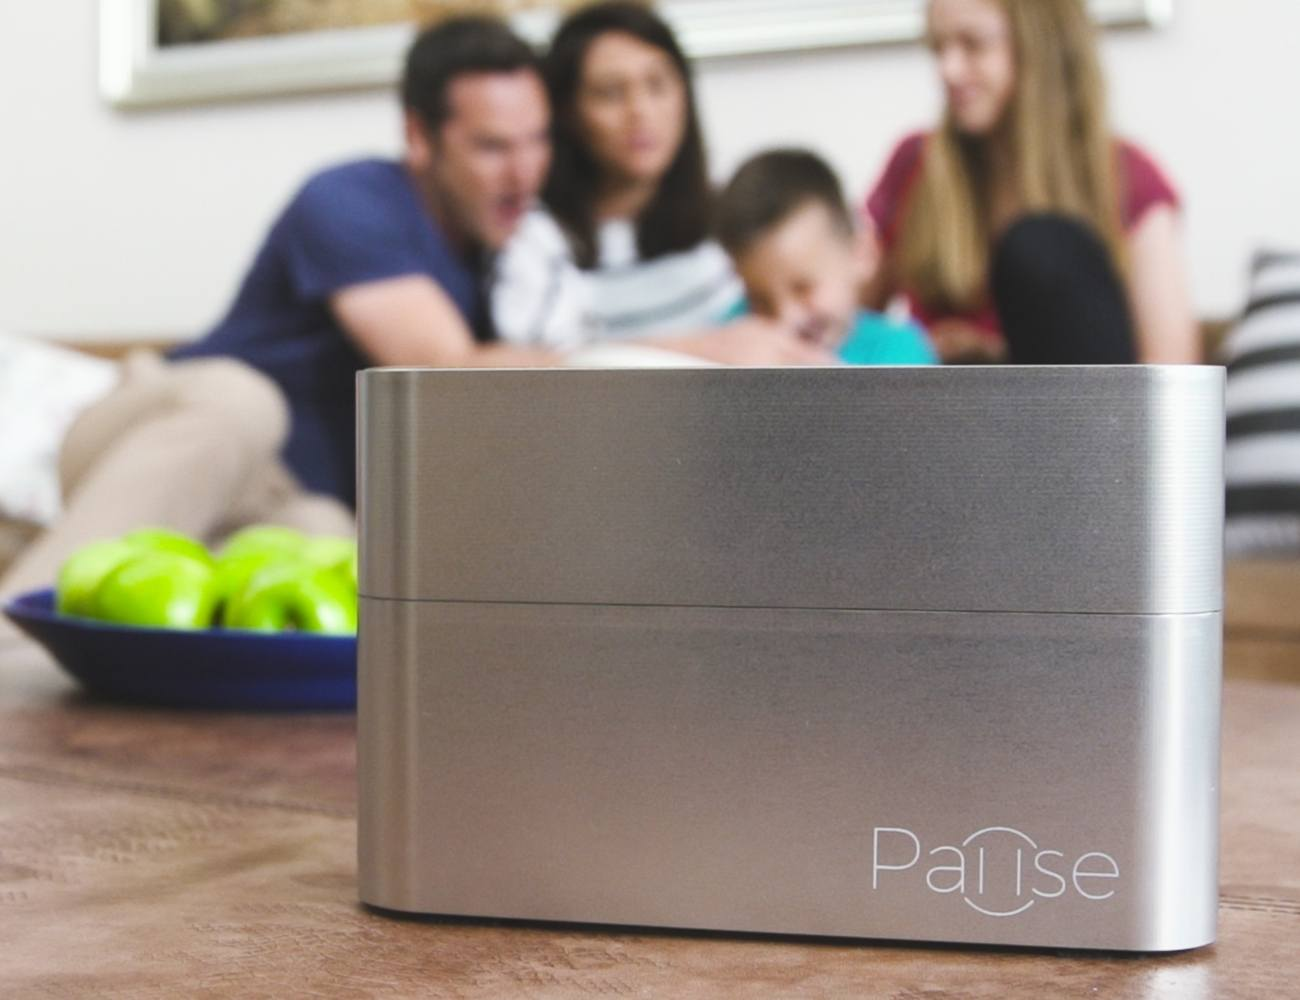 Pause – Bring Back Dinner-Table Conversation